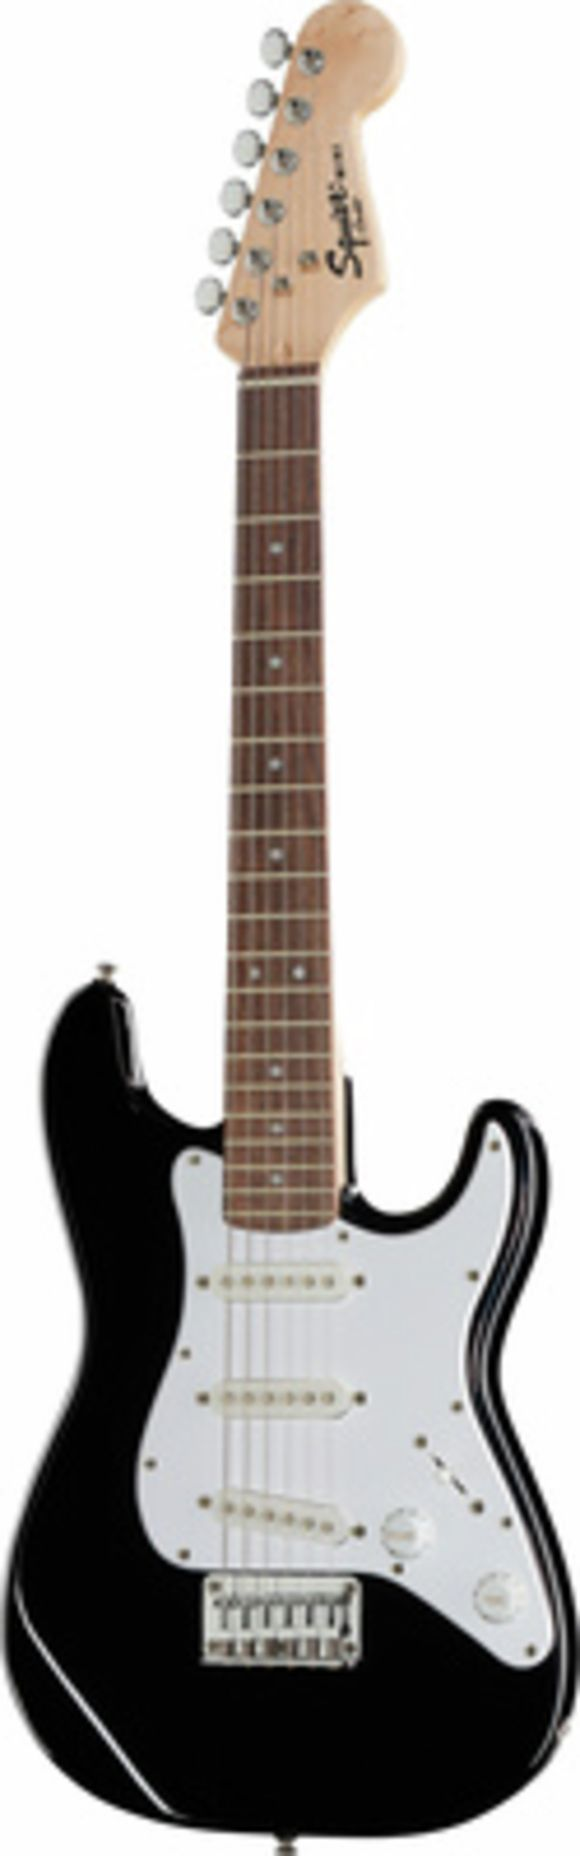 Squier Mini Strat V2 BK IL Fender